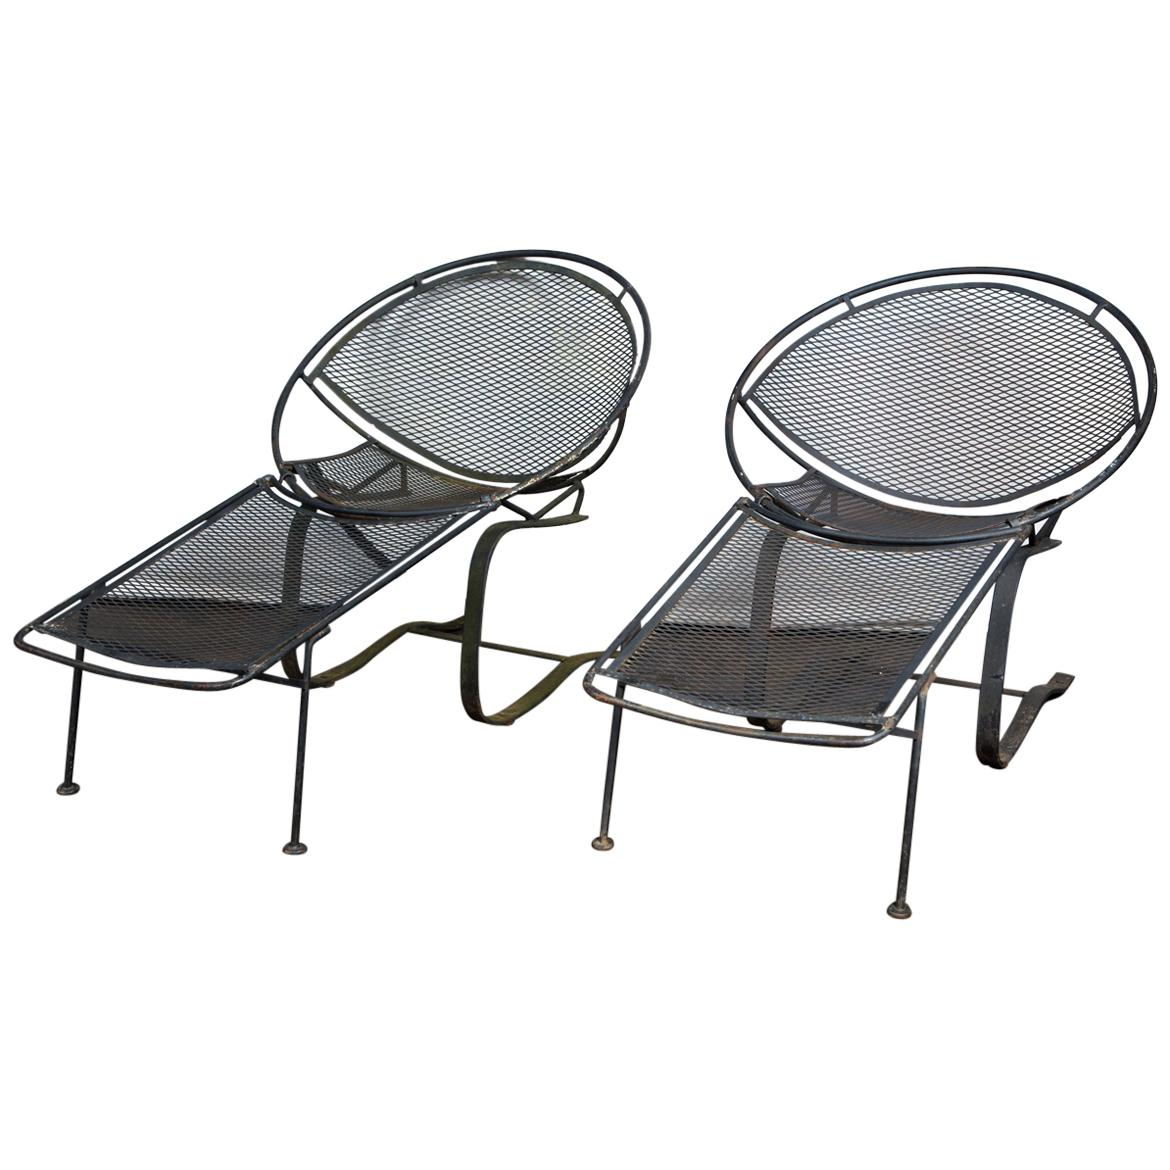 Pair of Maurizio Tempestini for Salterini Chaise Lounges, Wrought Iron